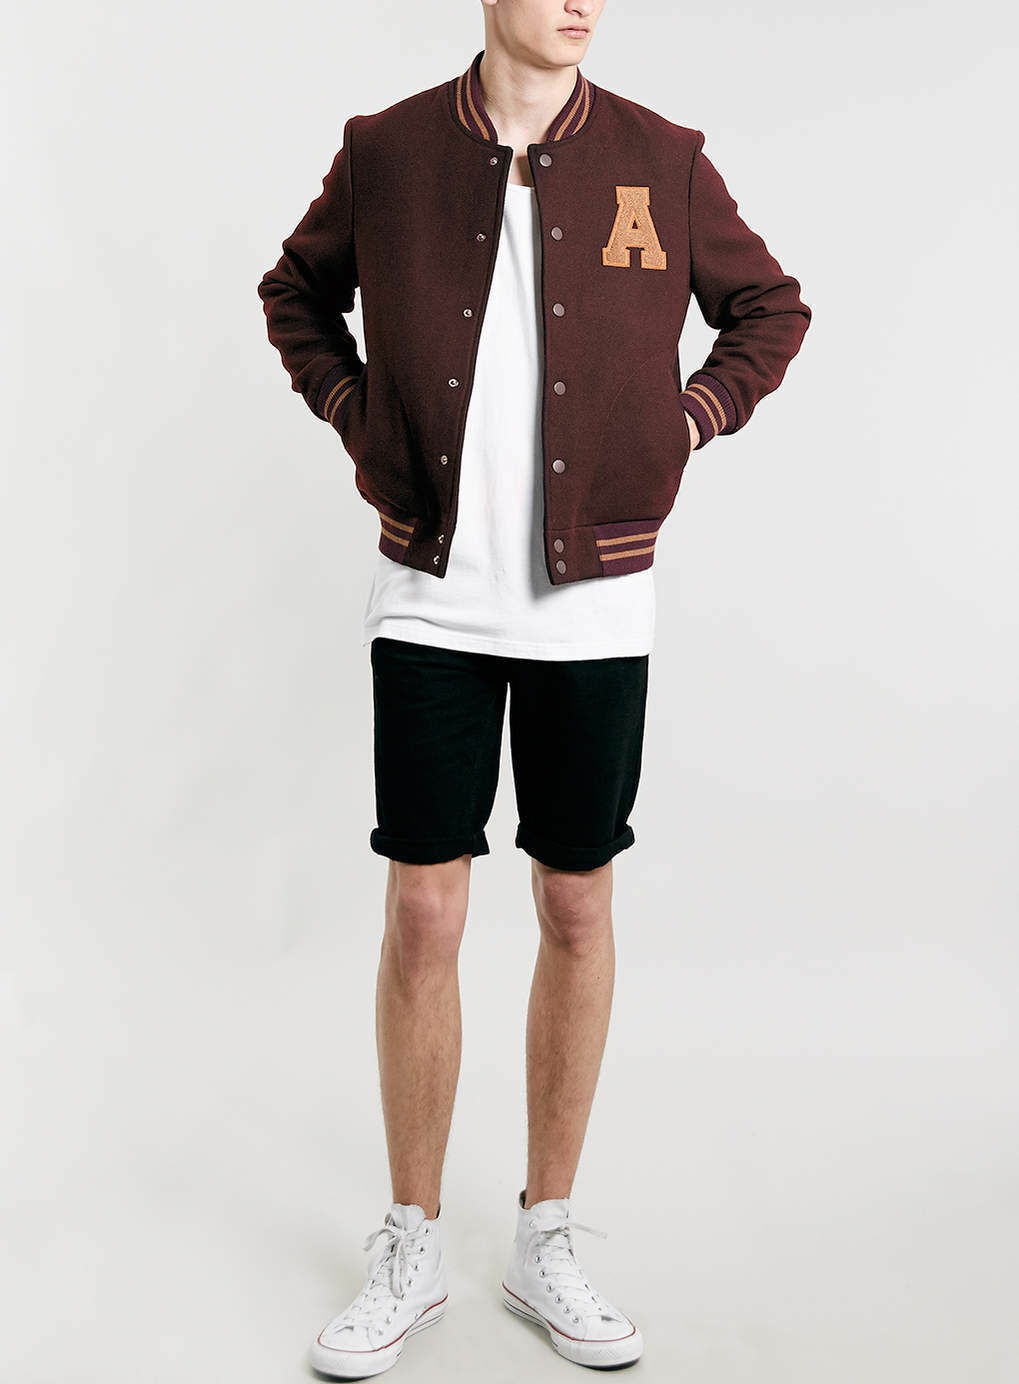 Mens leather gloves topman - The Topman Burgundy Bomber Jacket